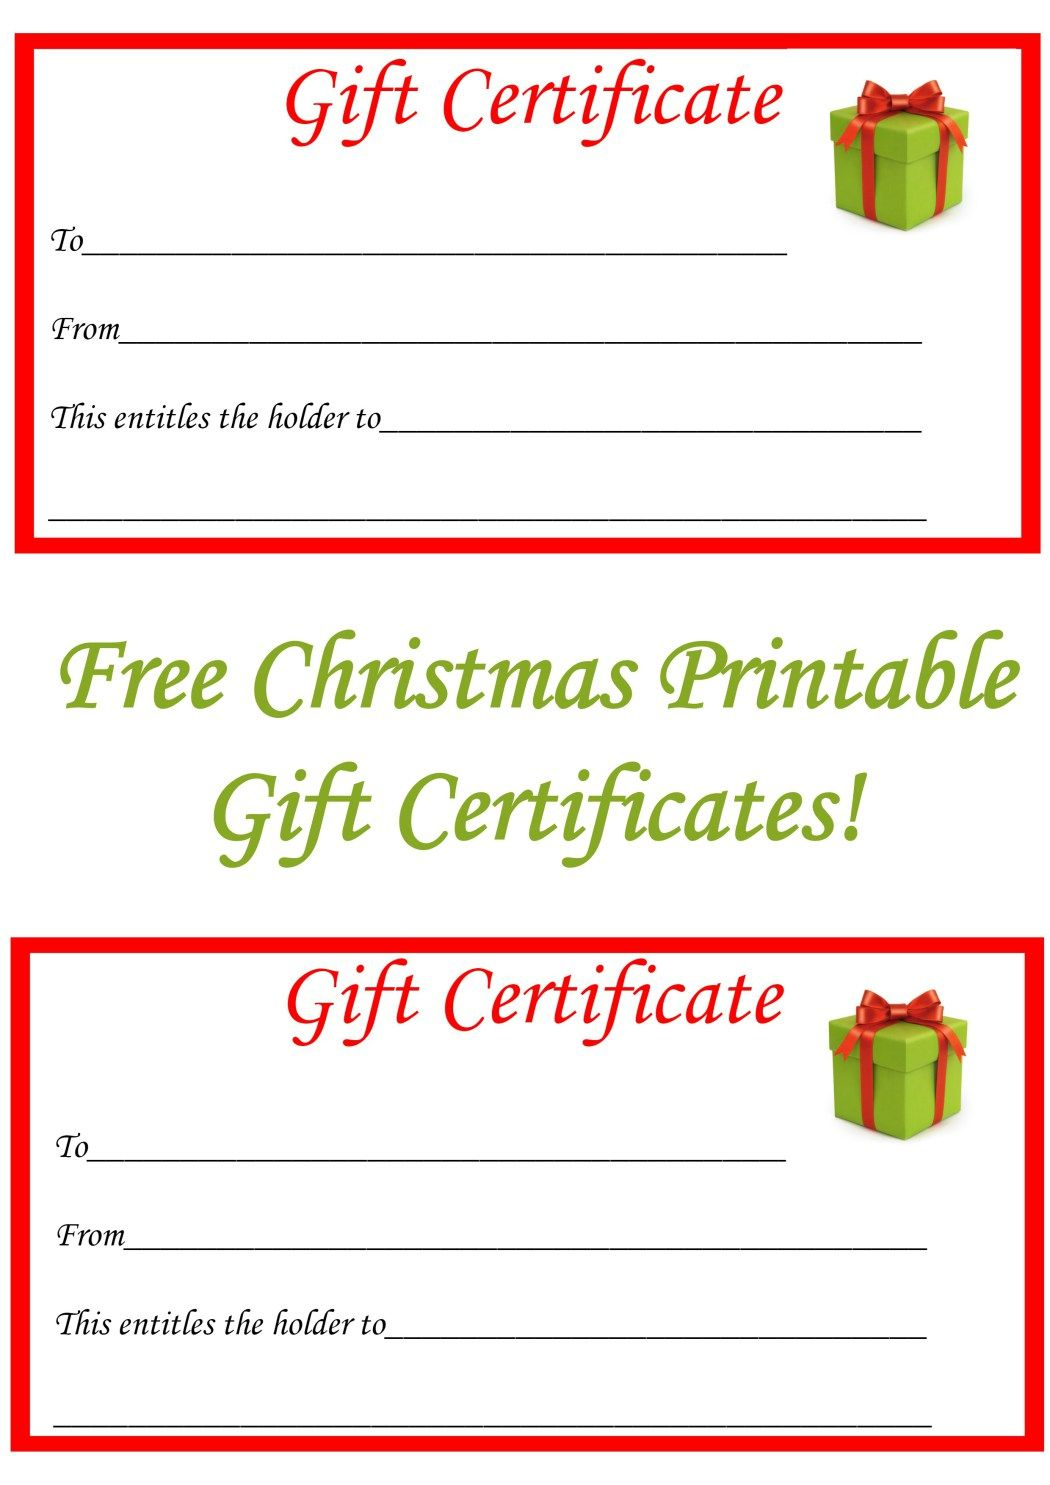 Free Christmas Printable Gift Certificates | Gift Ideas | Pinterest - Free Printable Gift Coupons